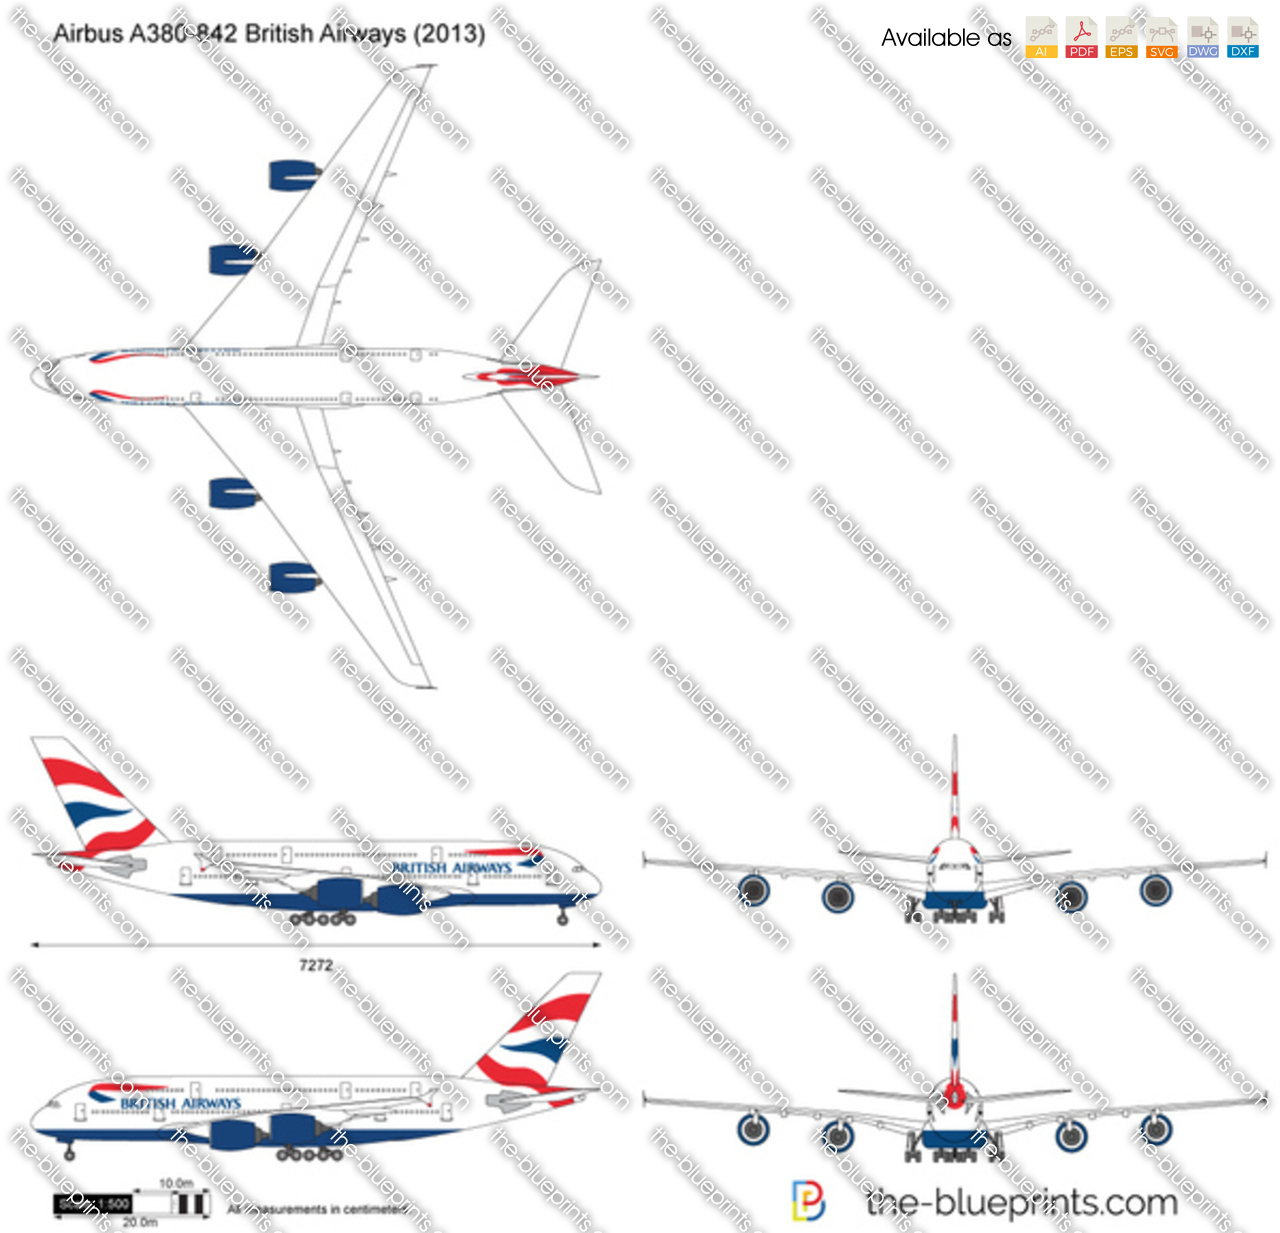 Airbus A380-842 British Airways 2016